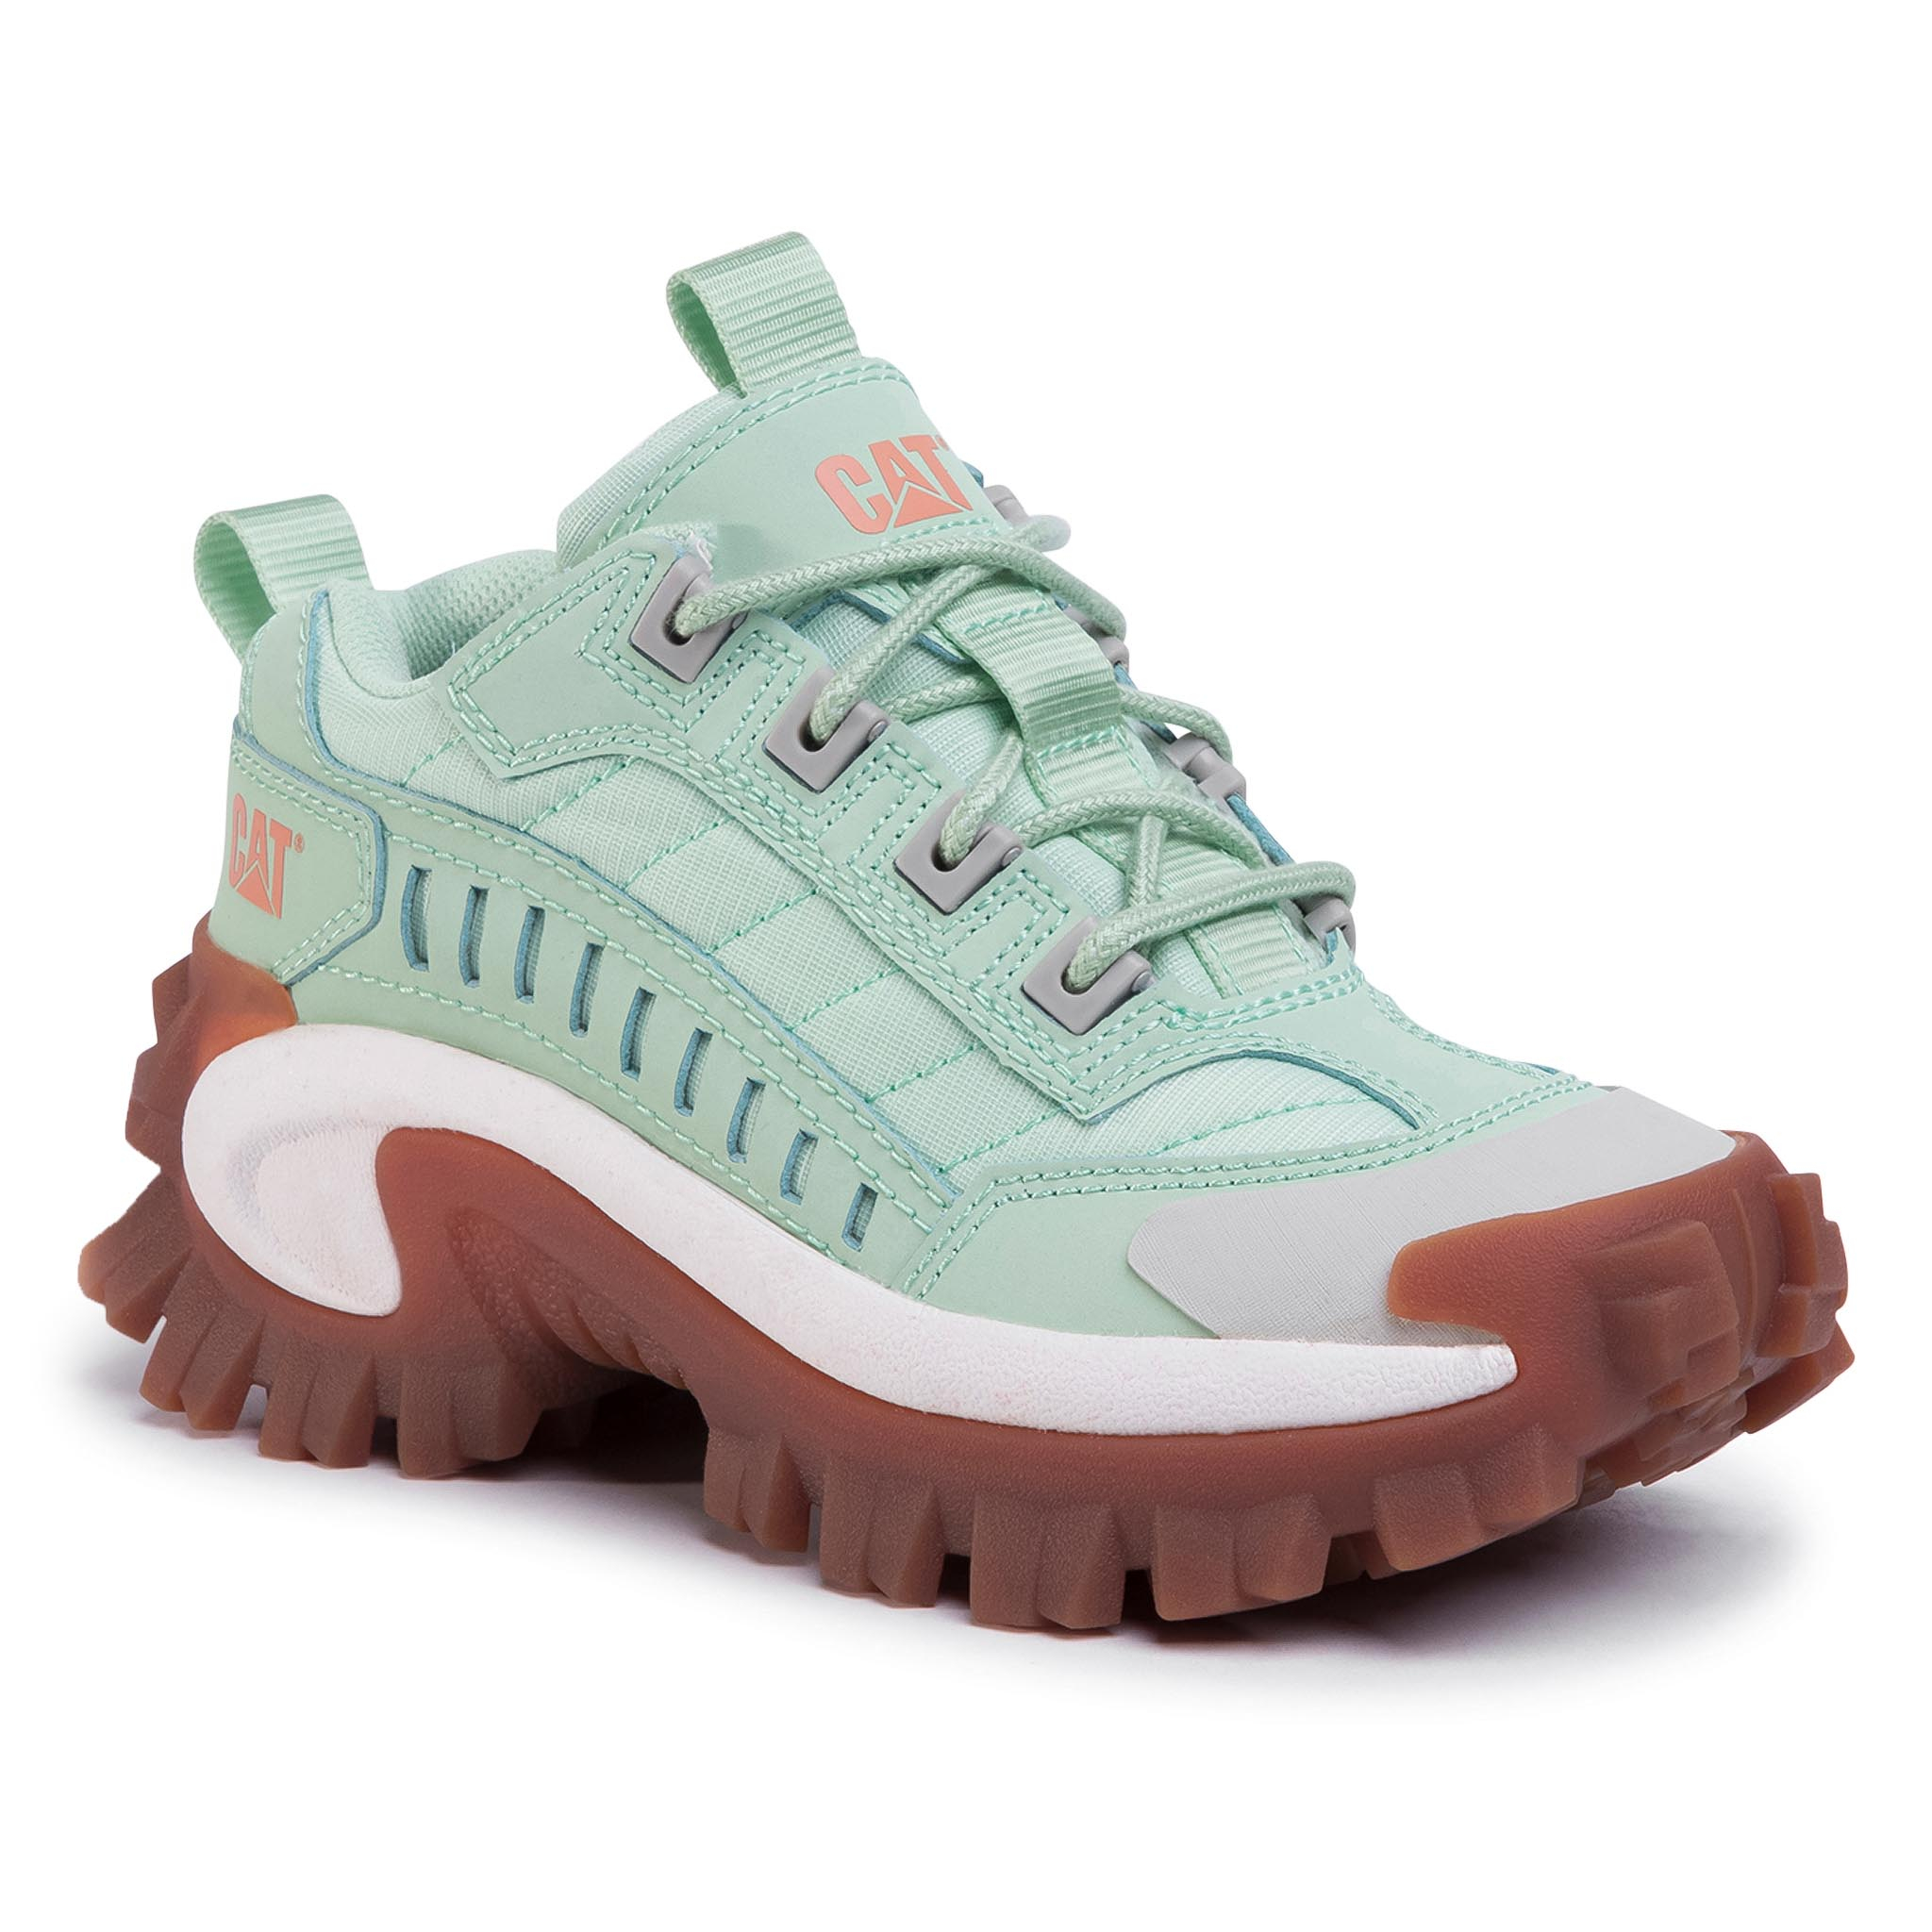 Sneakers CATERPILLAR - Intruder P724498 Pastel Green